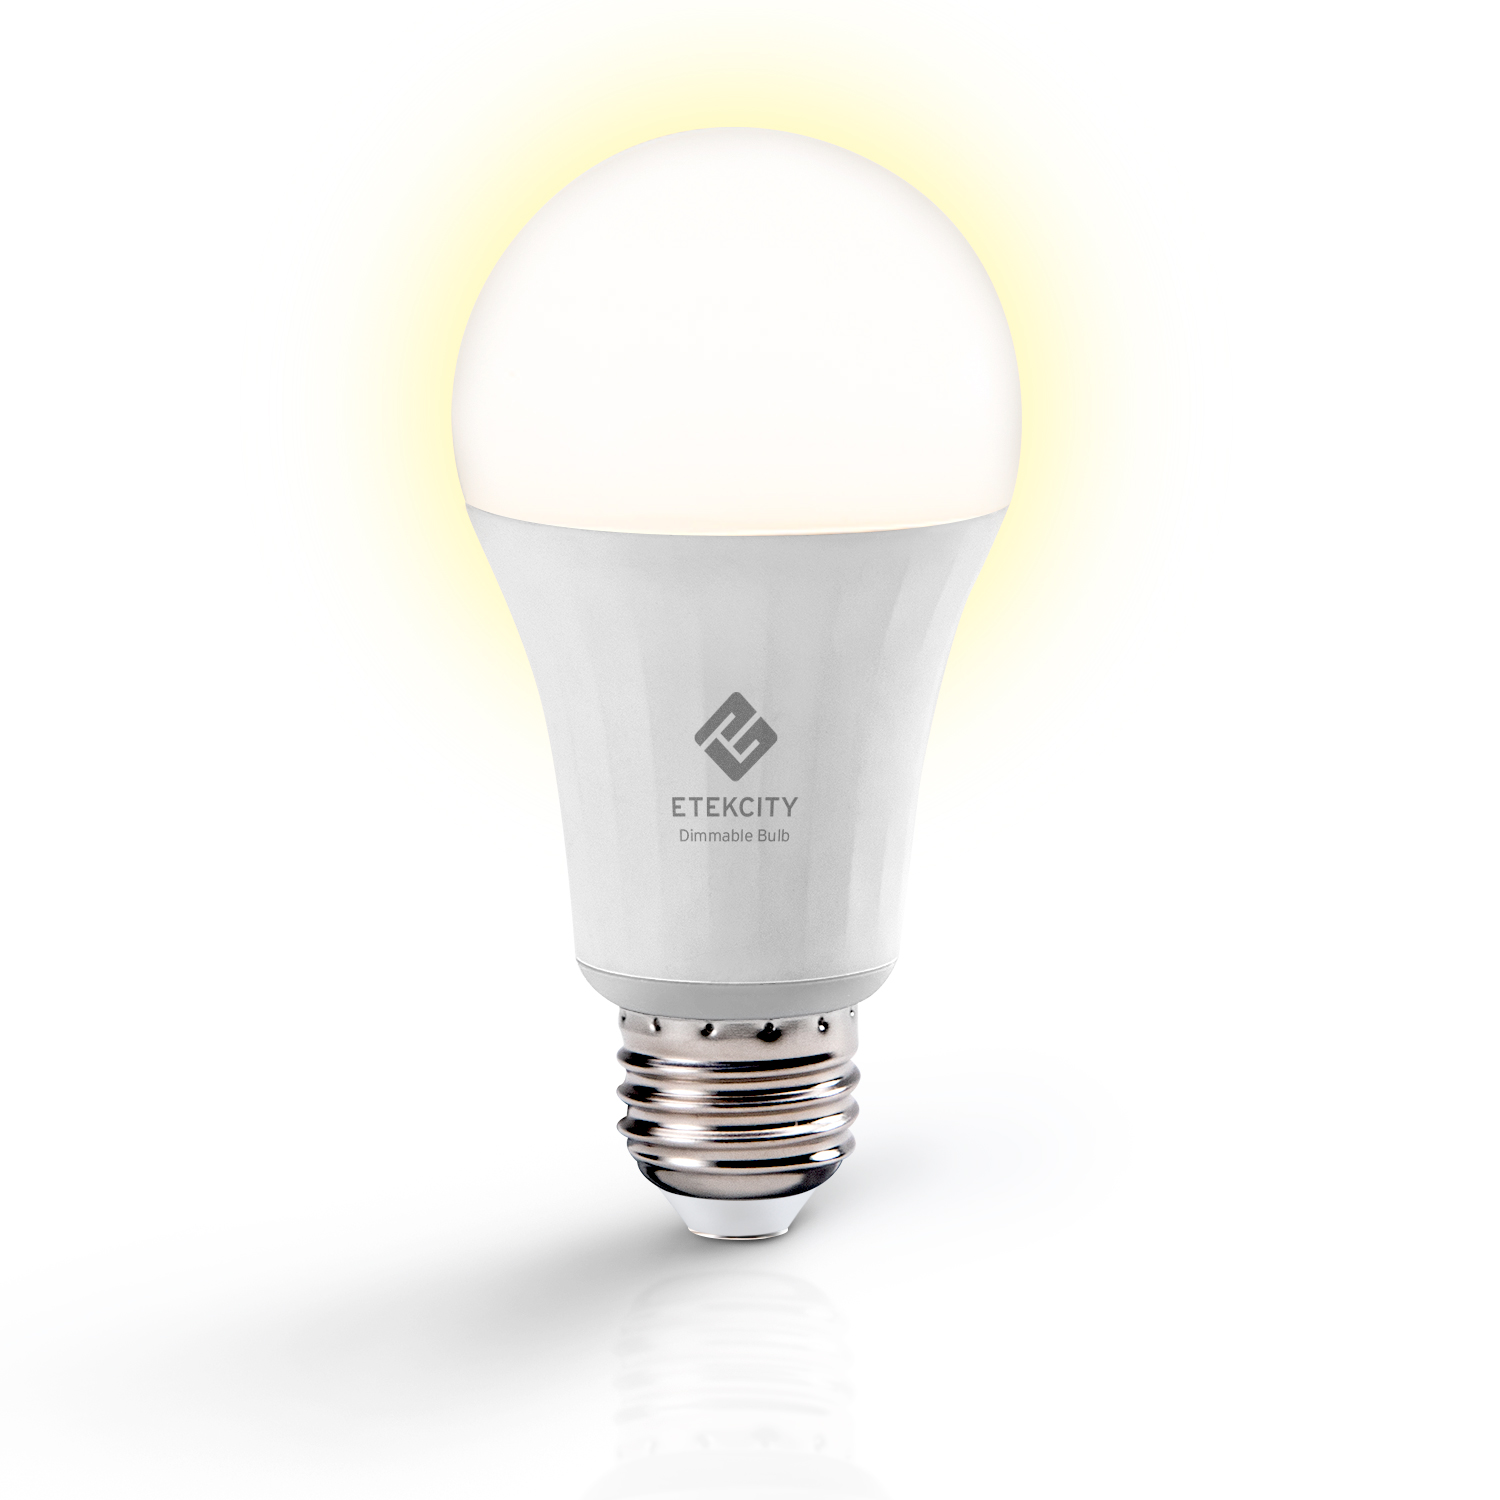 1.00_LP_HTHOHILF16D_ESL-100_Smart-LED-Soft-White-Dimmable-Light-Bulb_01c.jpg